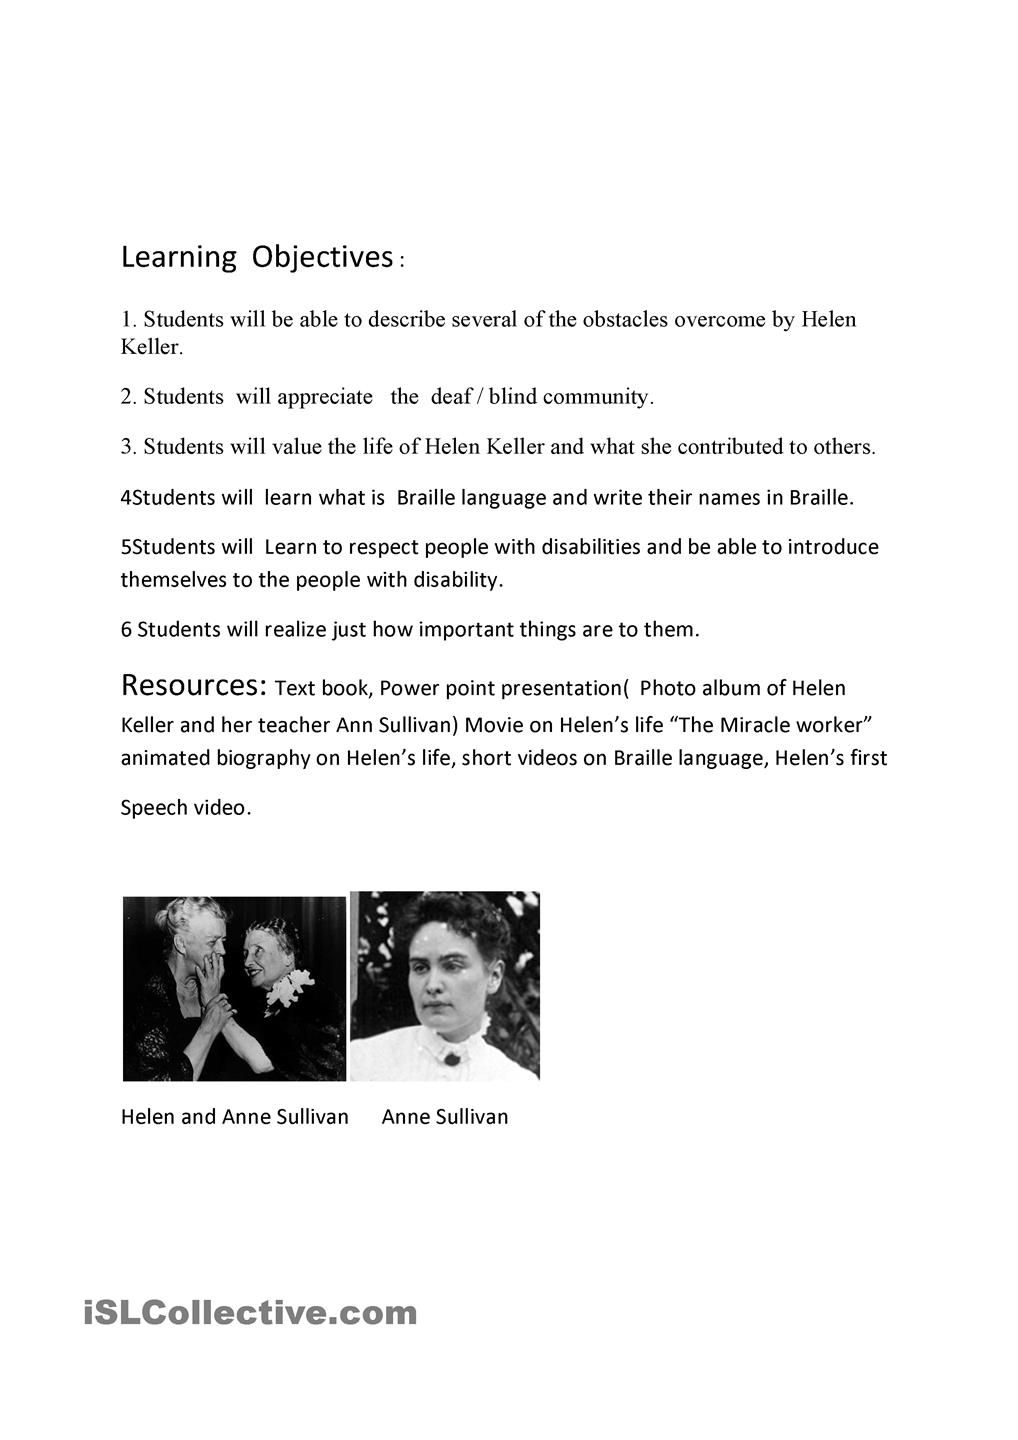 Worksheets Helen Keller Worksheets helen keller lesson plan esl units pinterest worksheets worksheet free printable made by teachers